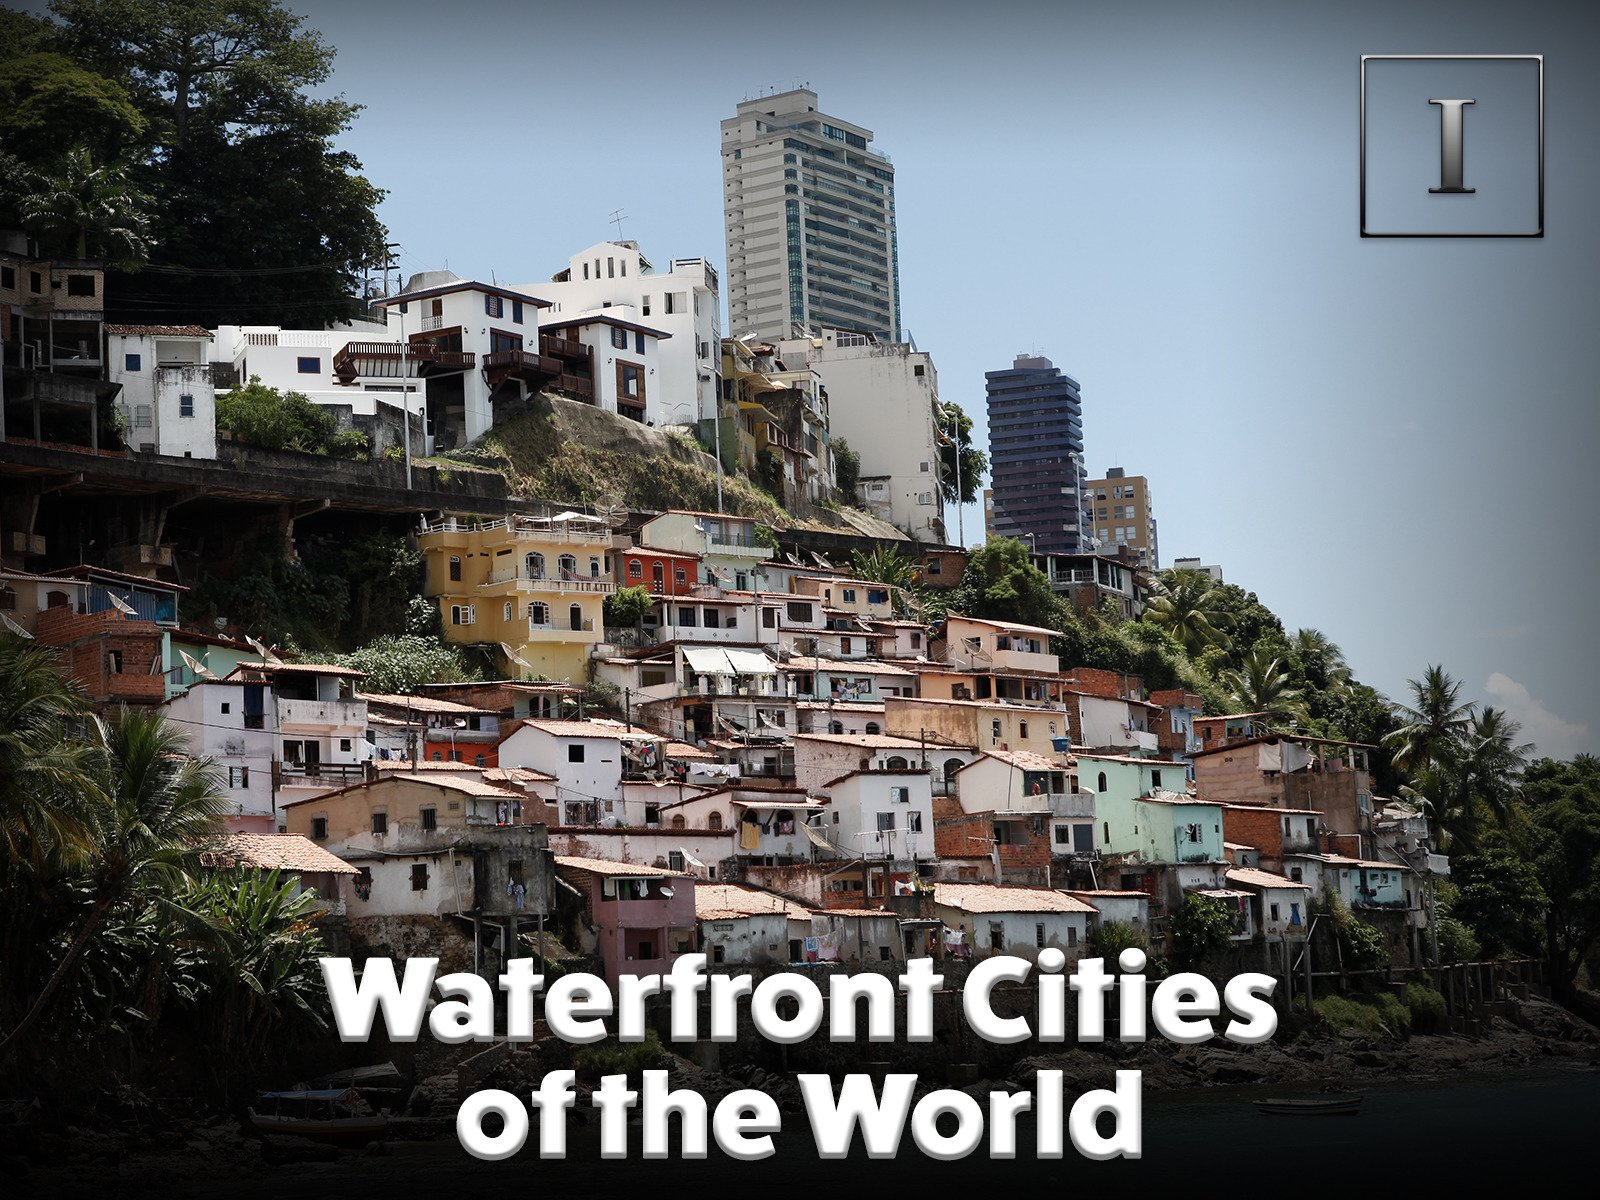 Waterfront Cities of the World - Season 2